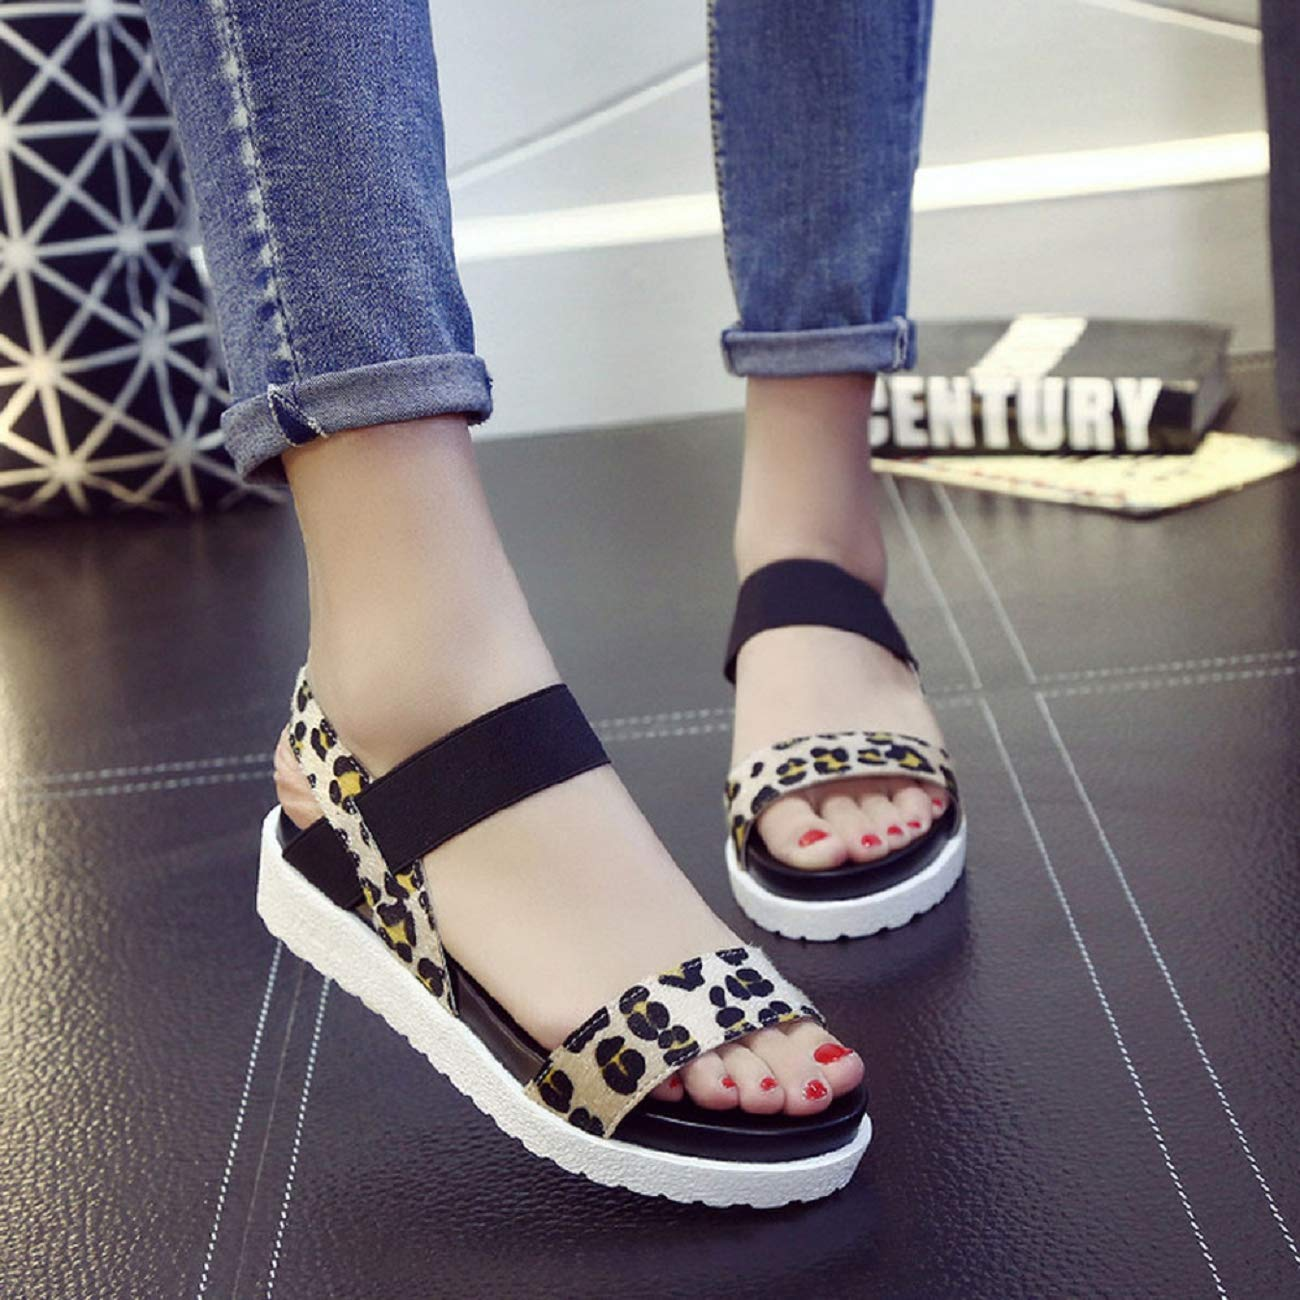 Comfortble Flats Shoes Women Wedges for Girls SYHKS Fashion Sandals Women Aged Leather Flat Sandals Ladies Shoes